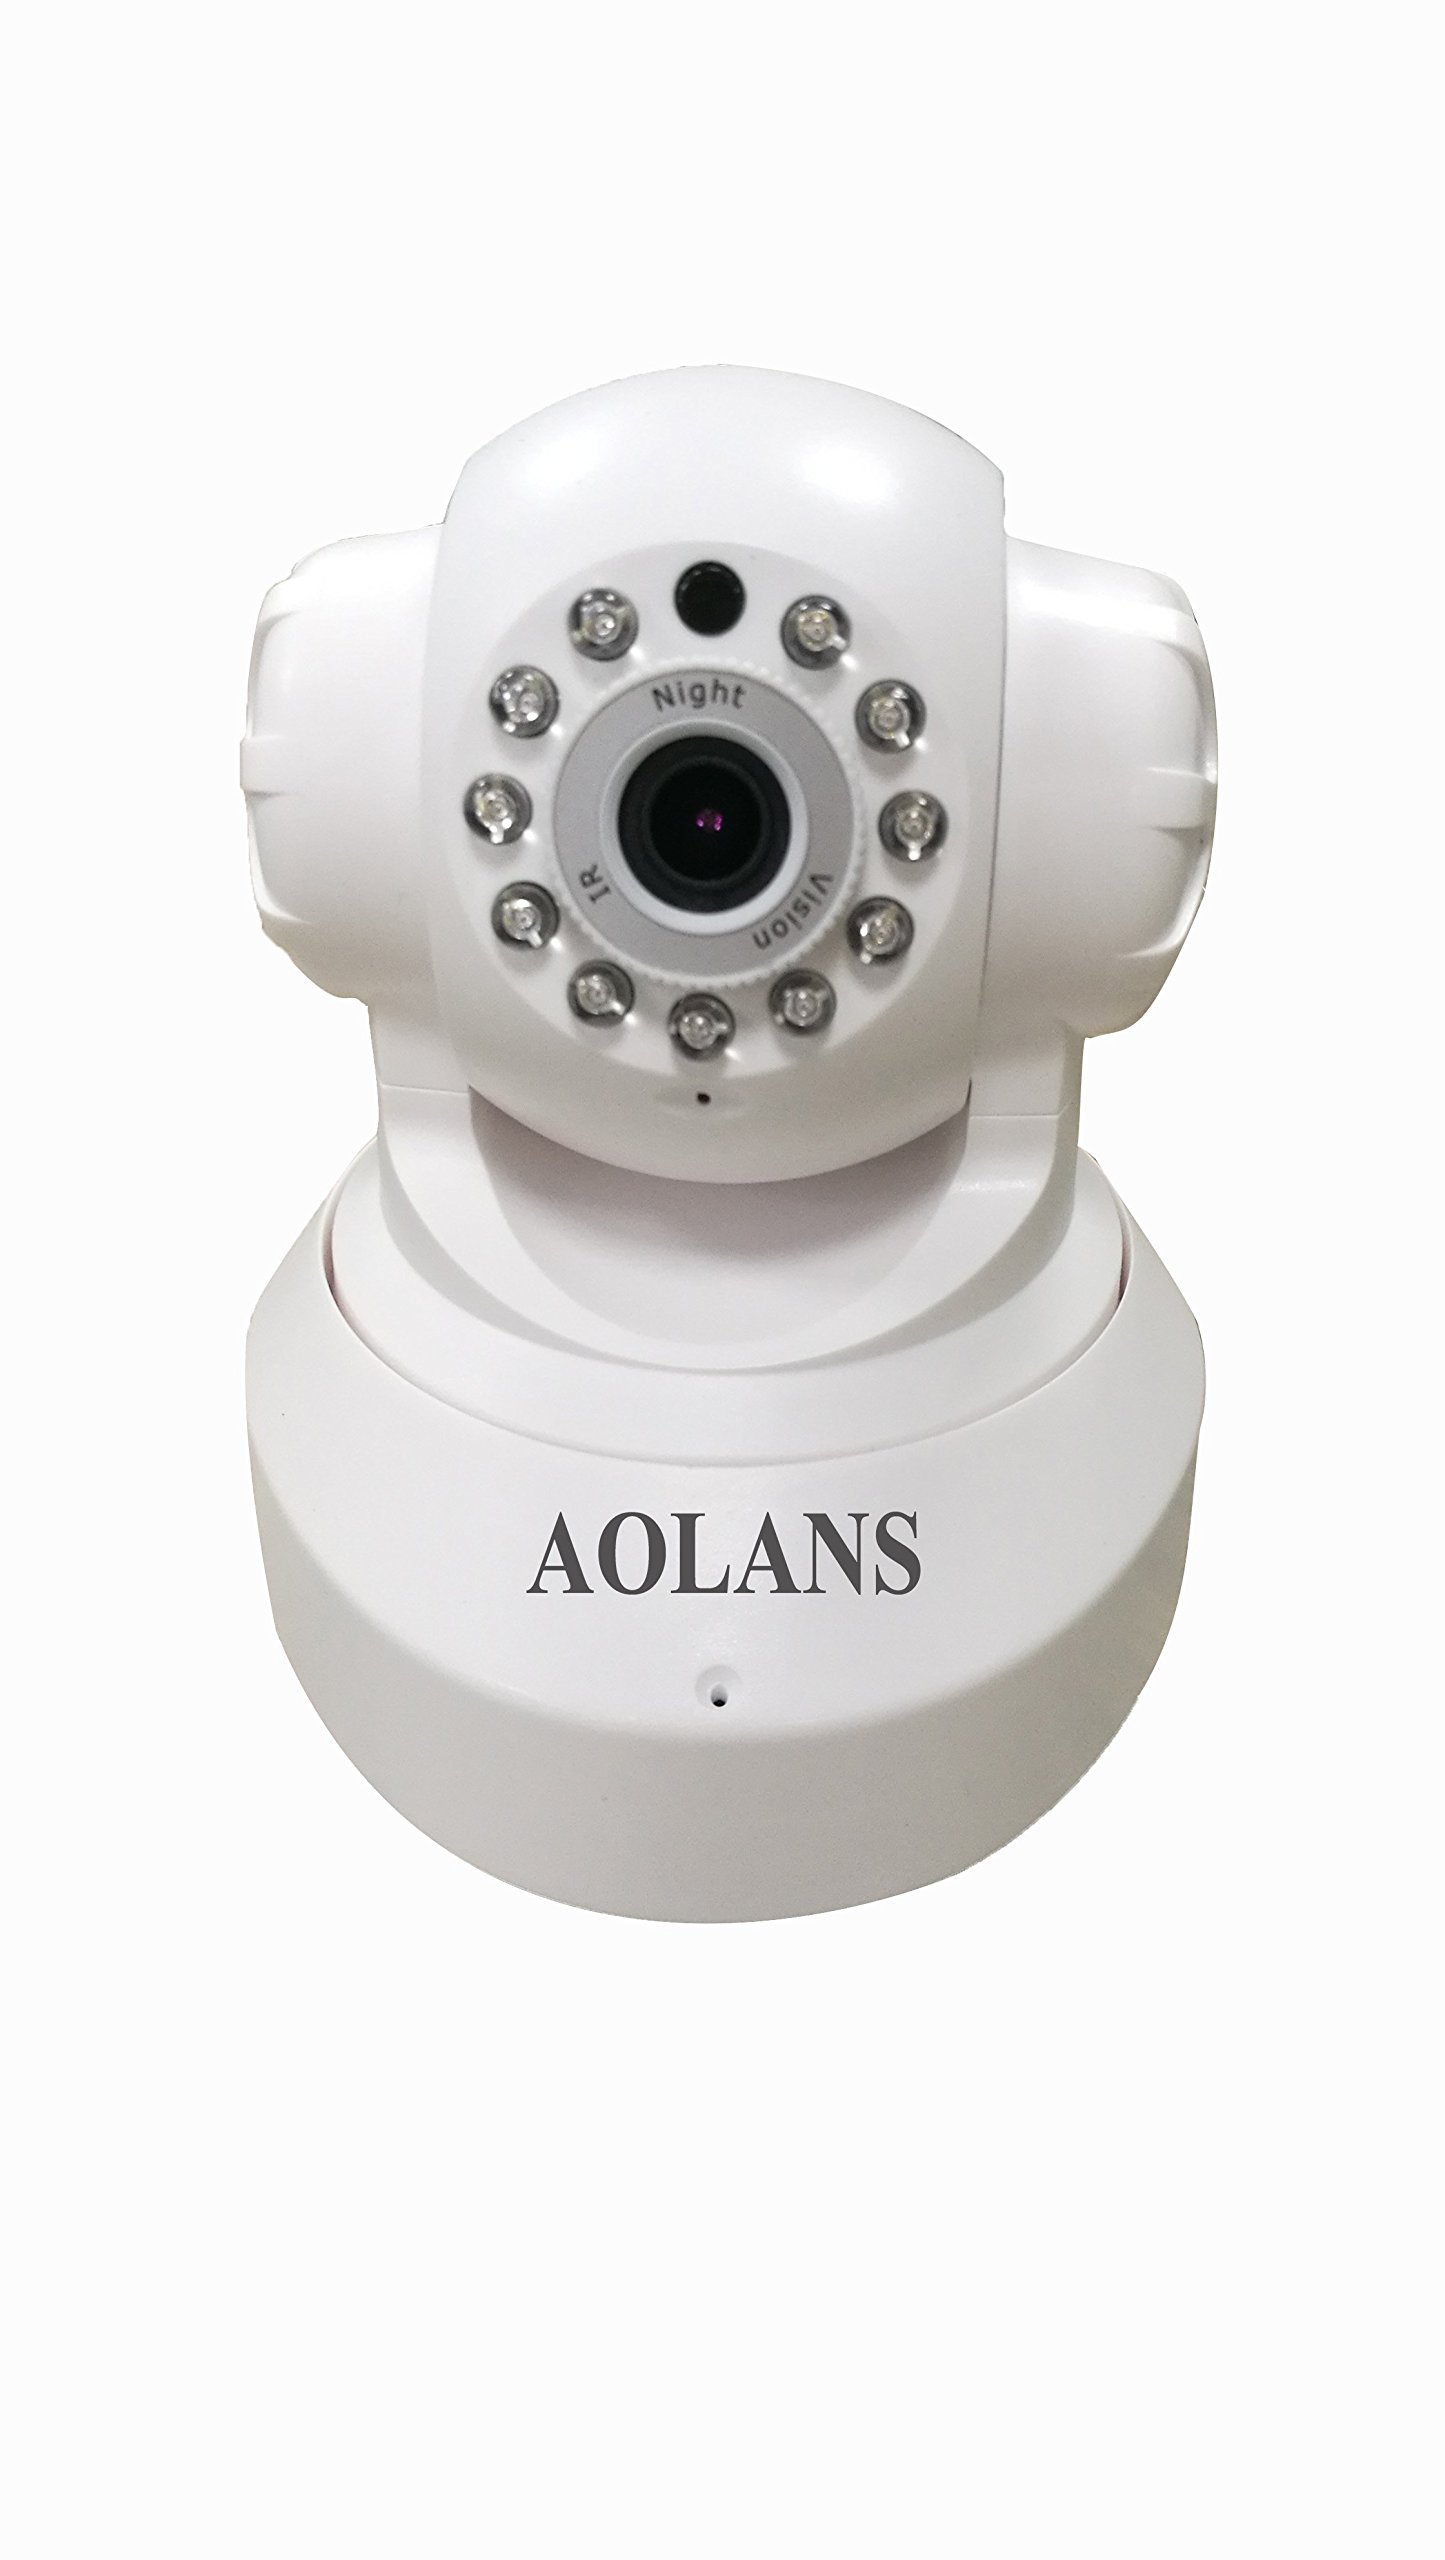 AOLANS 720P Ip camera, Wifi security home monitoring Night Vision,Two Way Audio For iPhone/Android Phone (AOLANS)64G